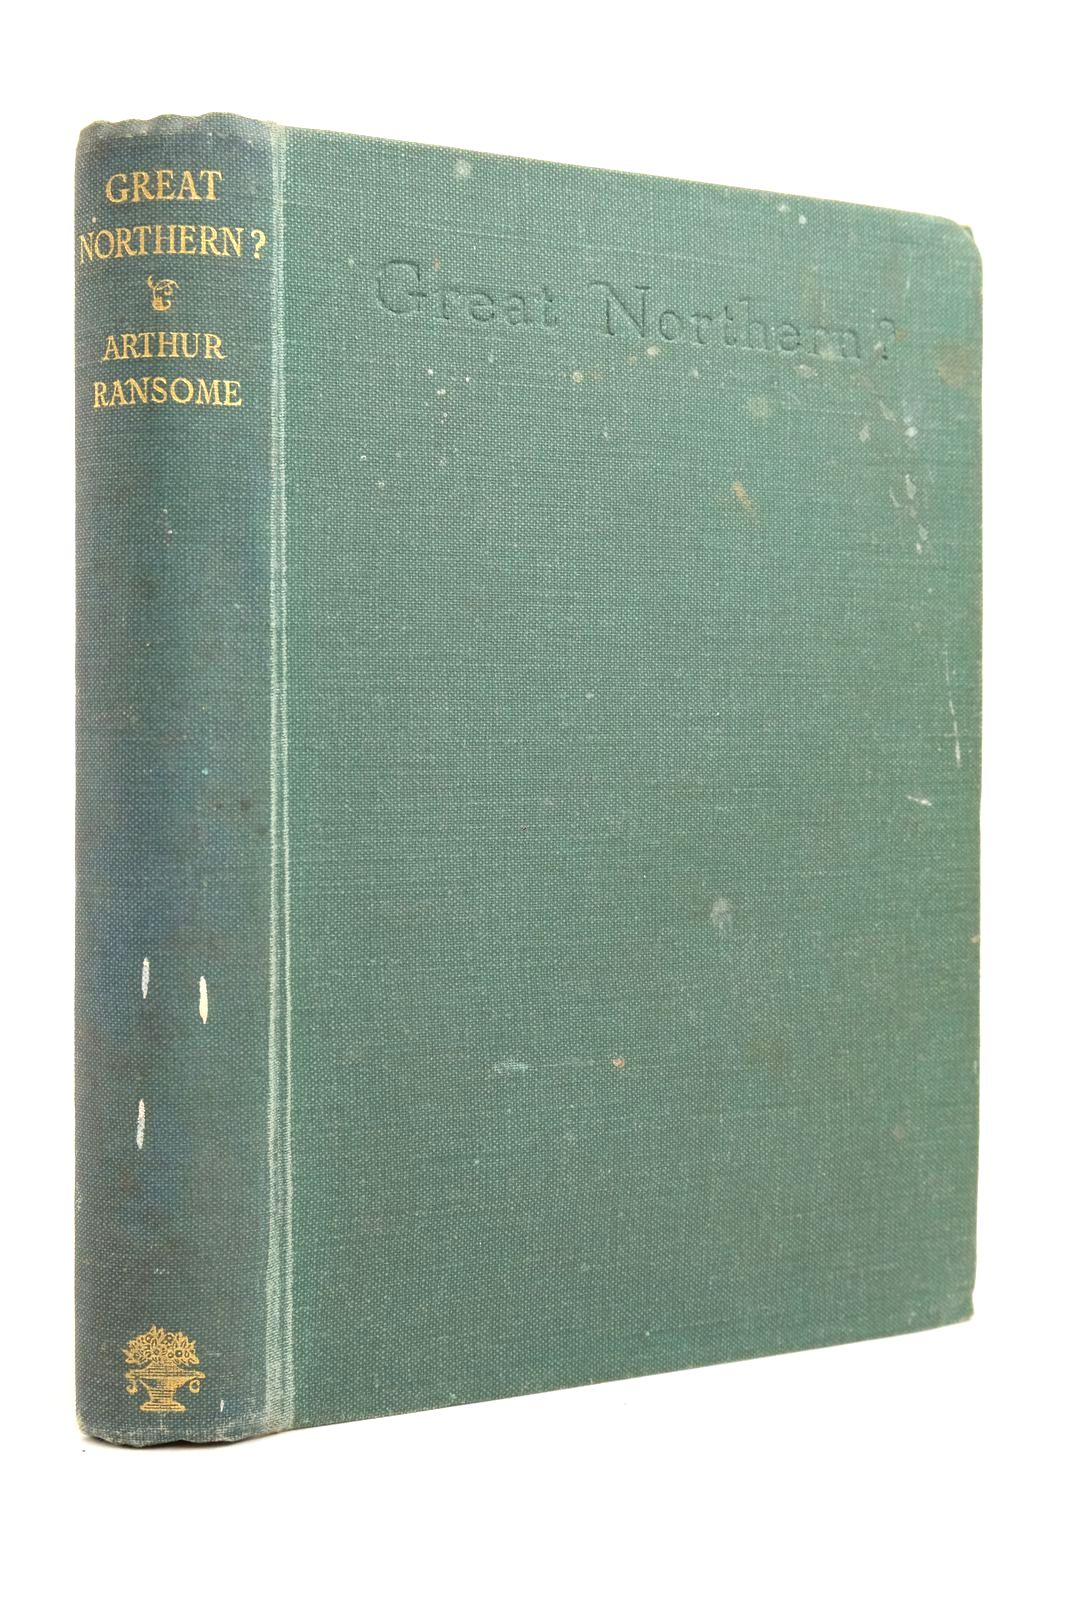 Photo of GREAT NORTHERN? written by Ransome, Arthur illustrated by Ransome, Arthur published by Jonathan Cape (STOCK CODE: 2134721)  for sale by Stella & Rose's Books